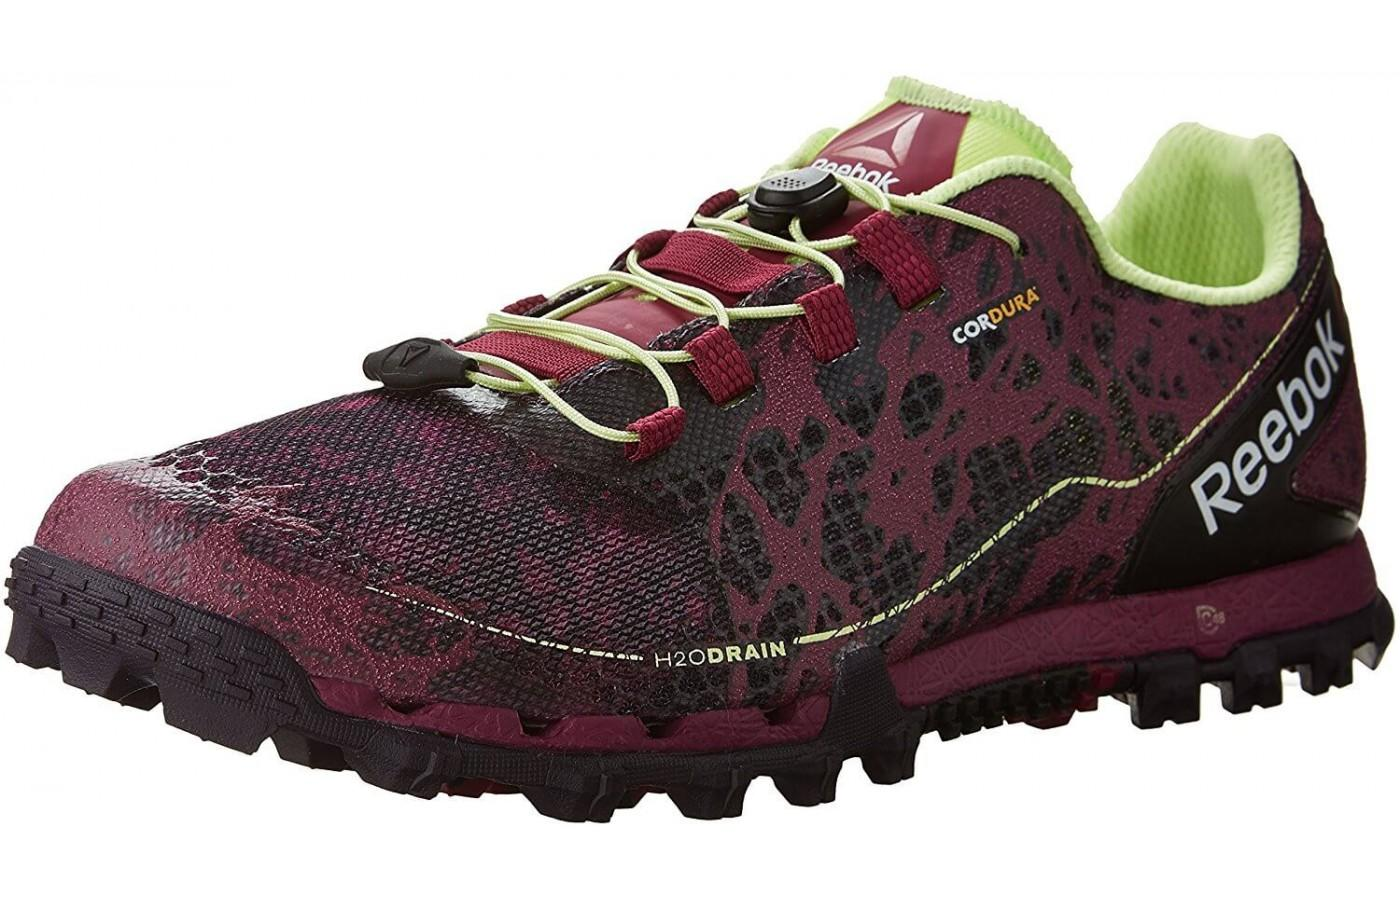 Reebok All Terrain Super is made for the trails